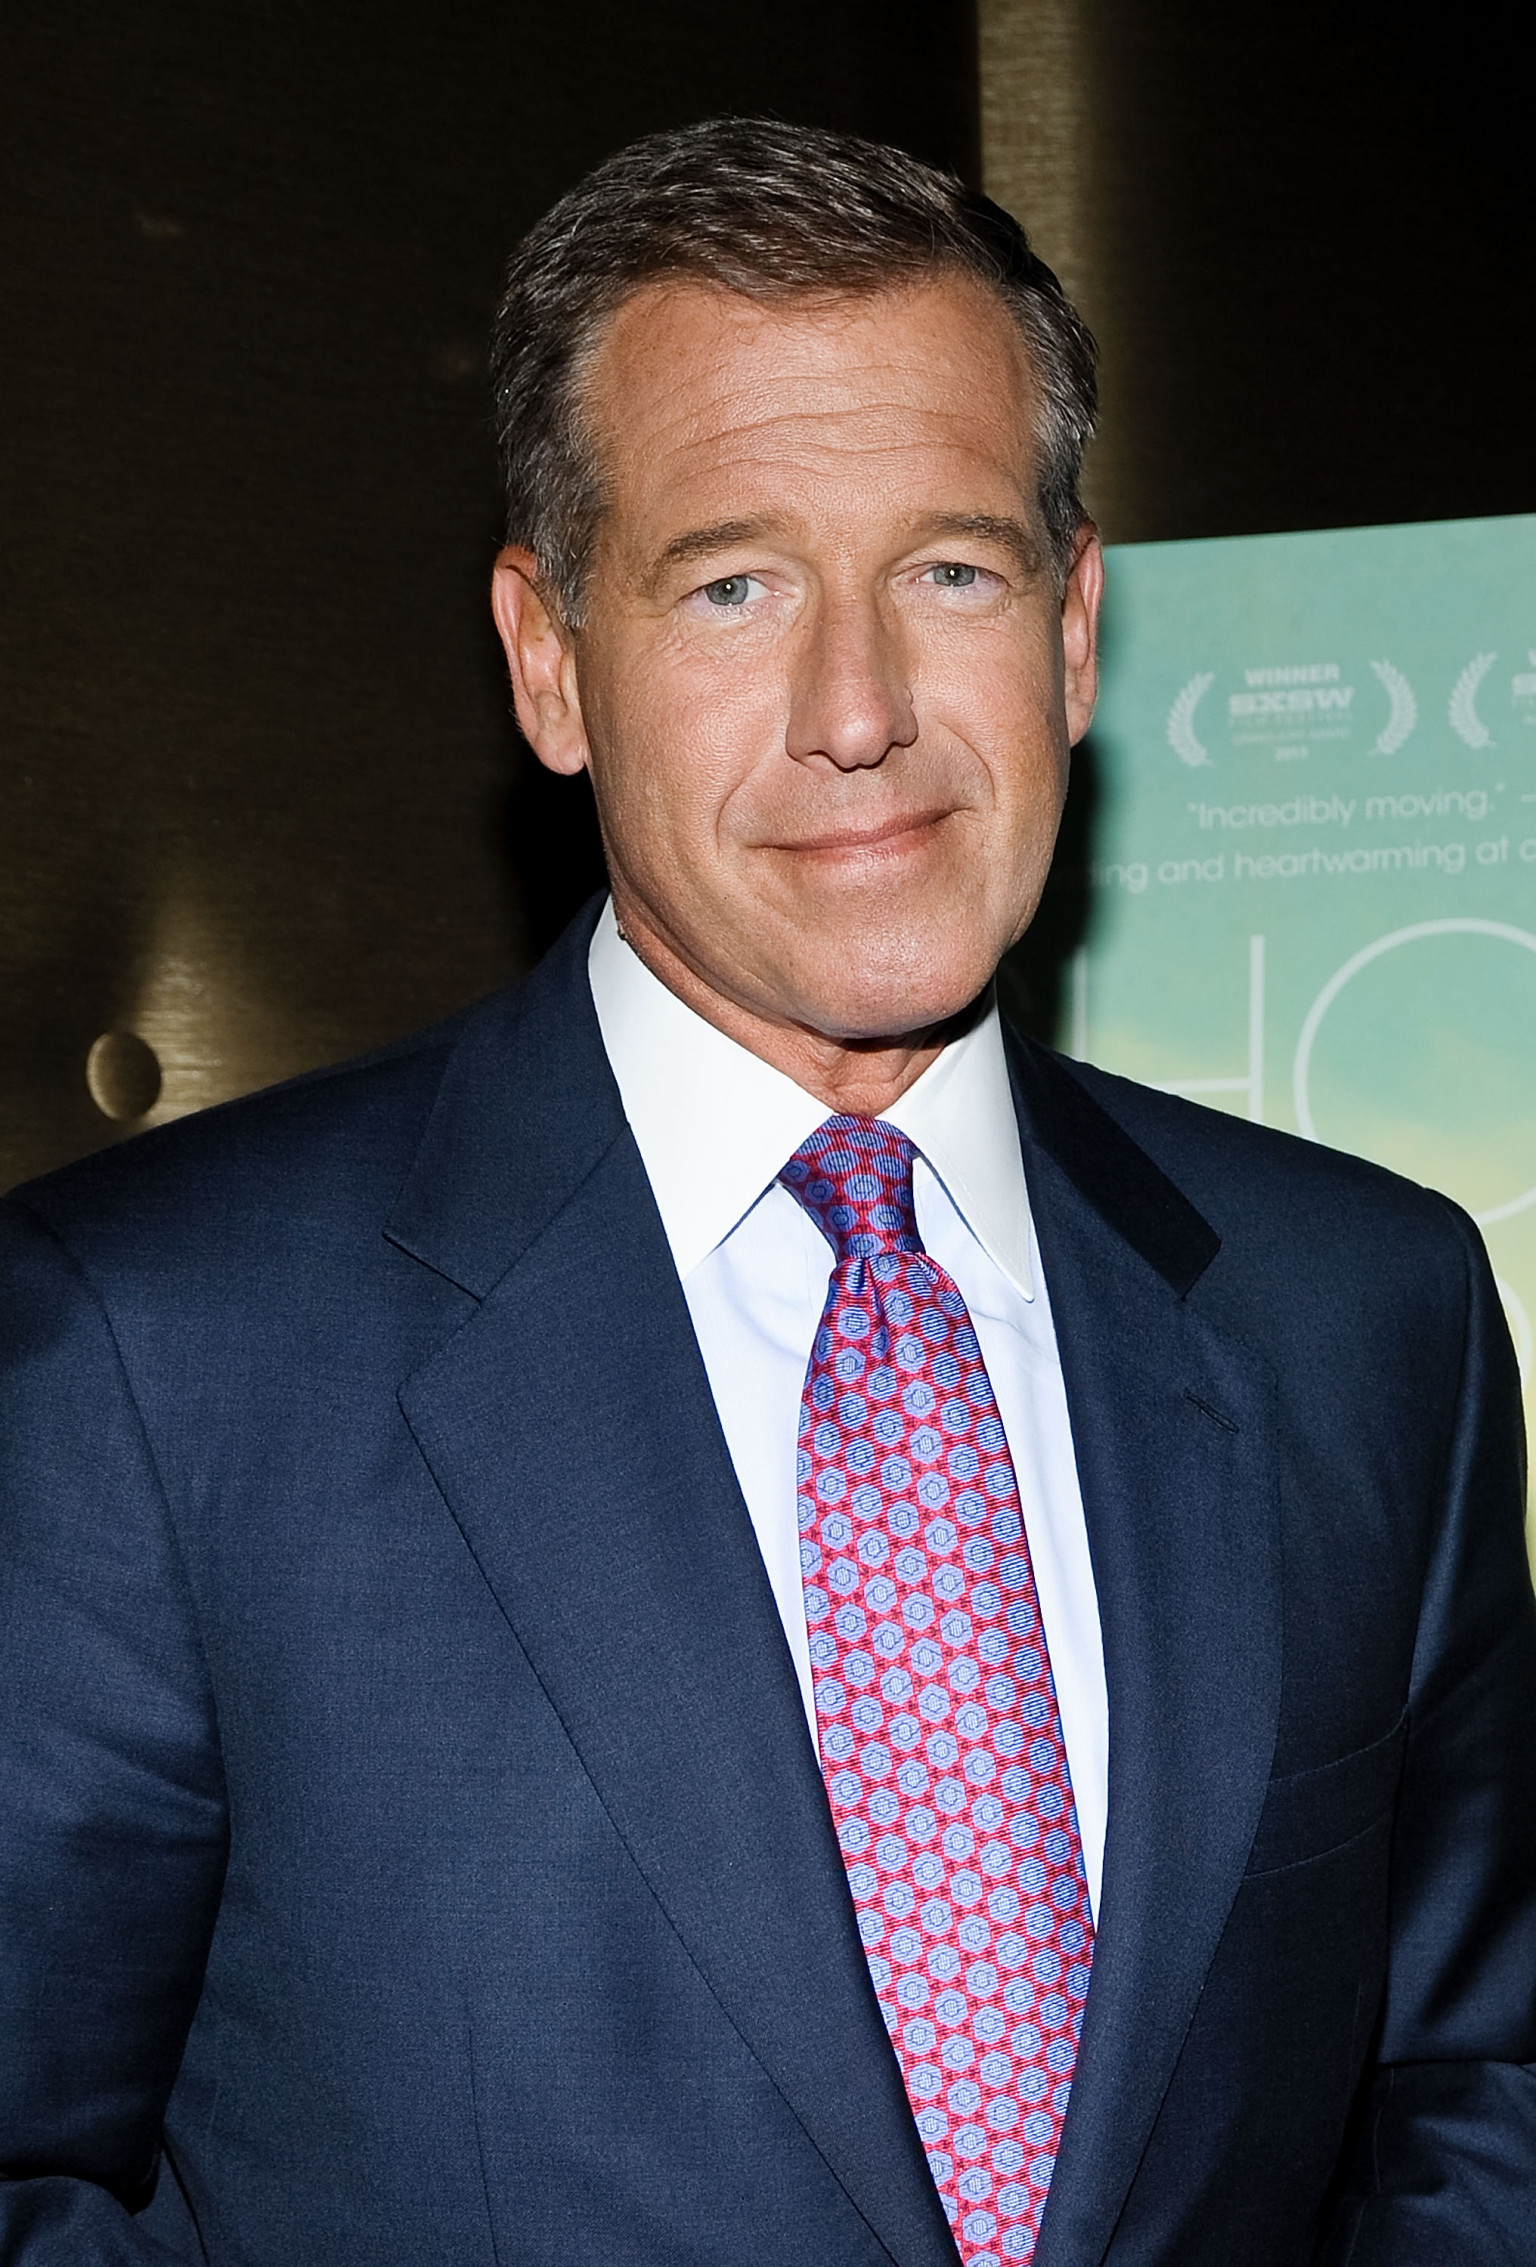 brian williams updates viewers on knee replacement surgery huffpost. Black Bedroom Furniture Sets. Home Design Ideas